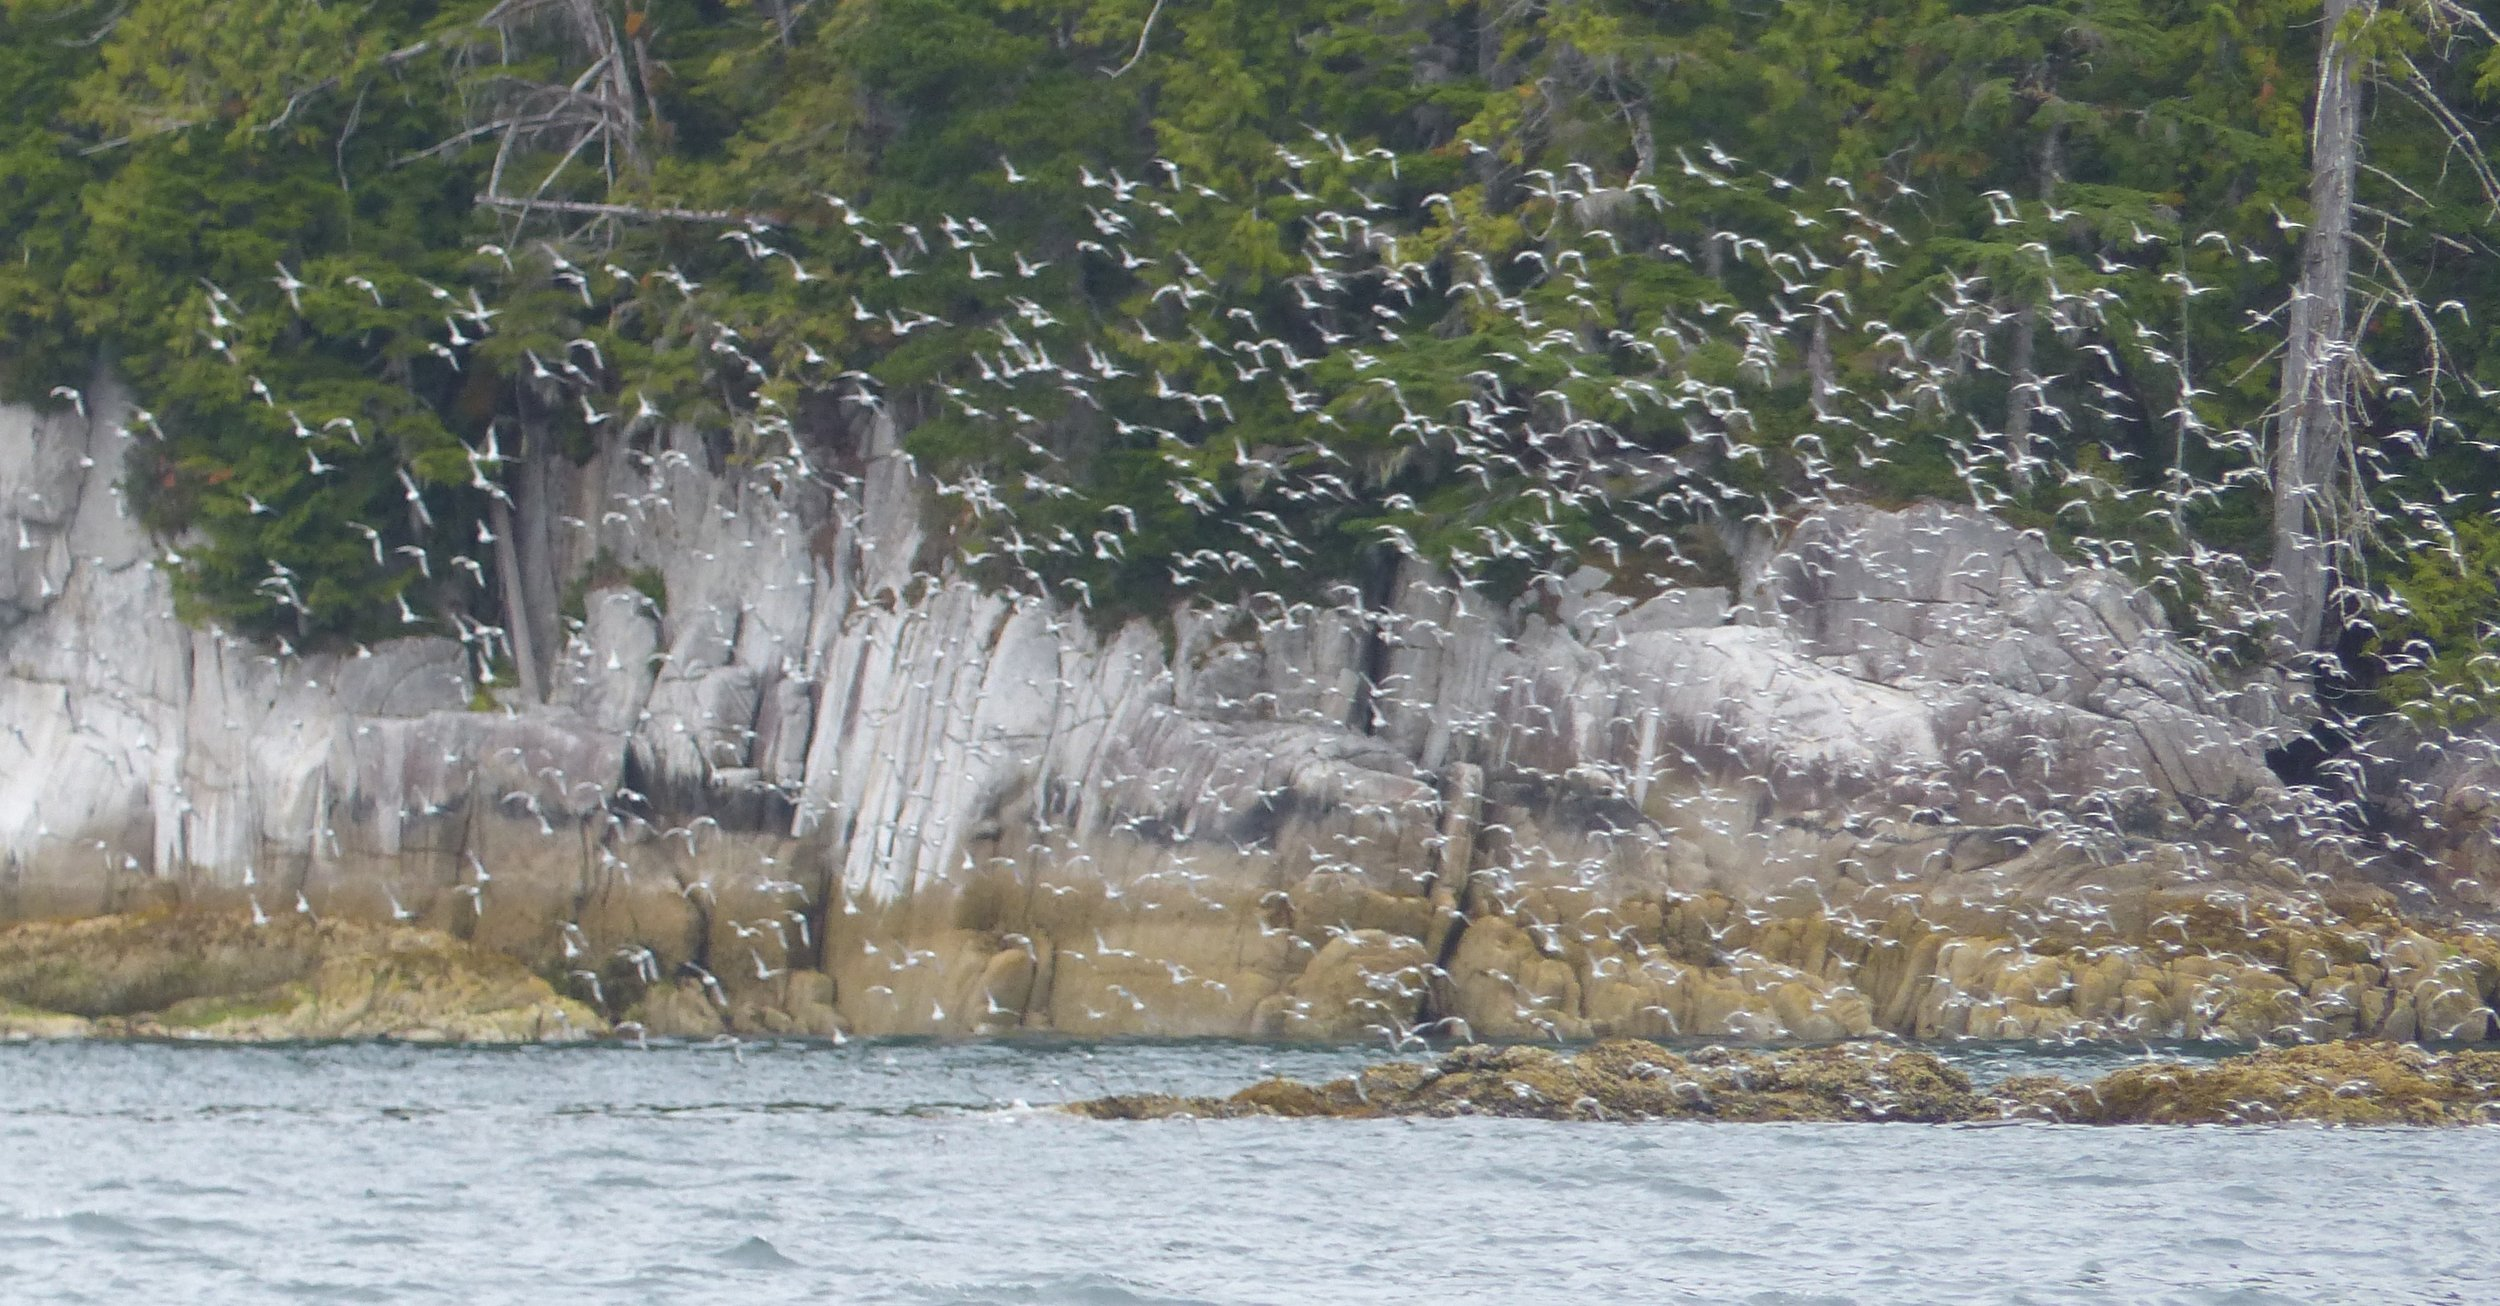 Seabirds and Basaltic columns - deep natural beauty we all need to protect from the potential for oil spills (Photo by P. Wilcox)